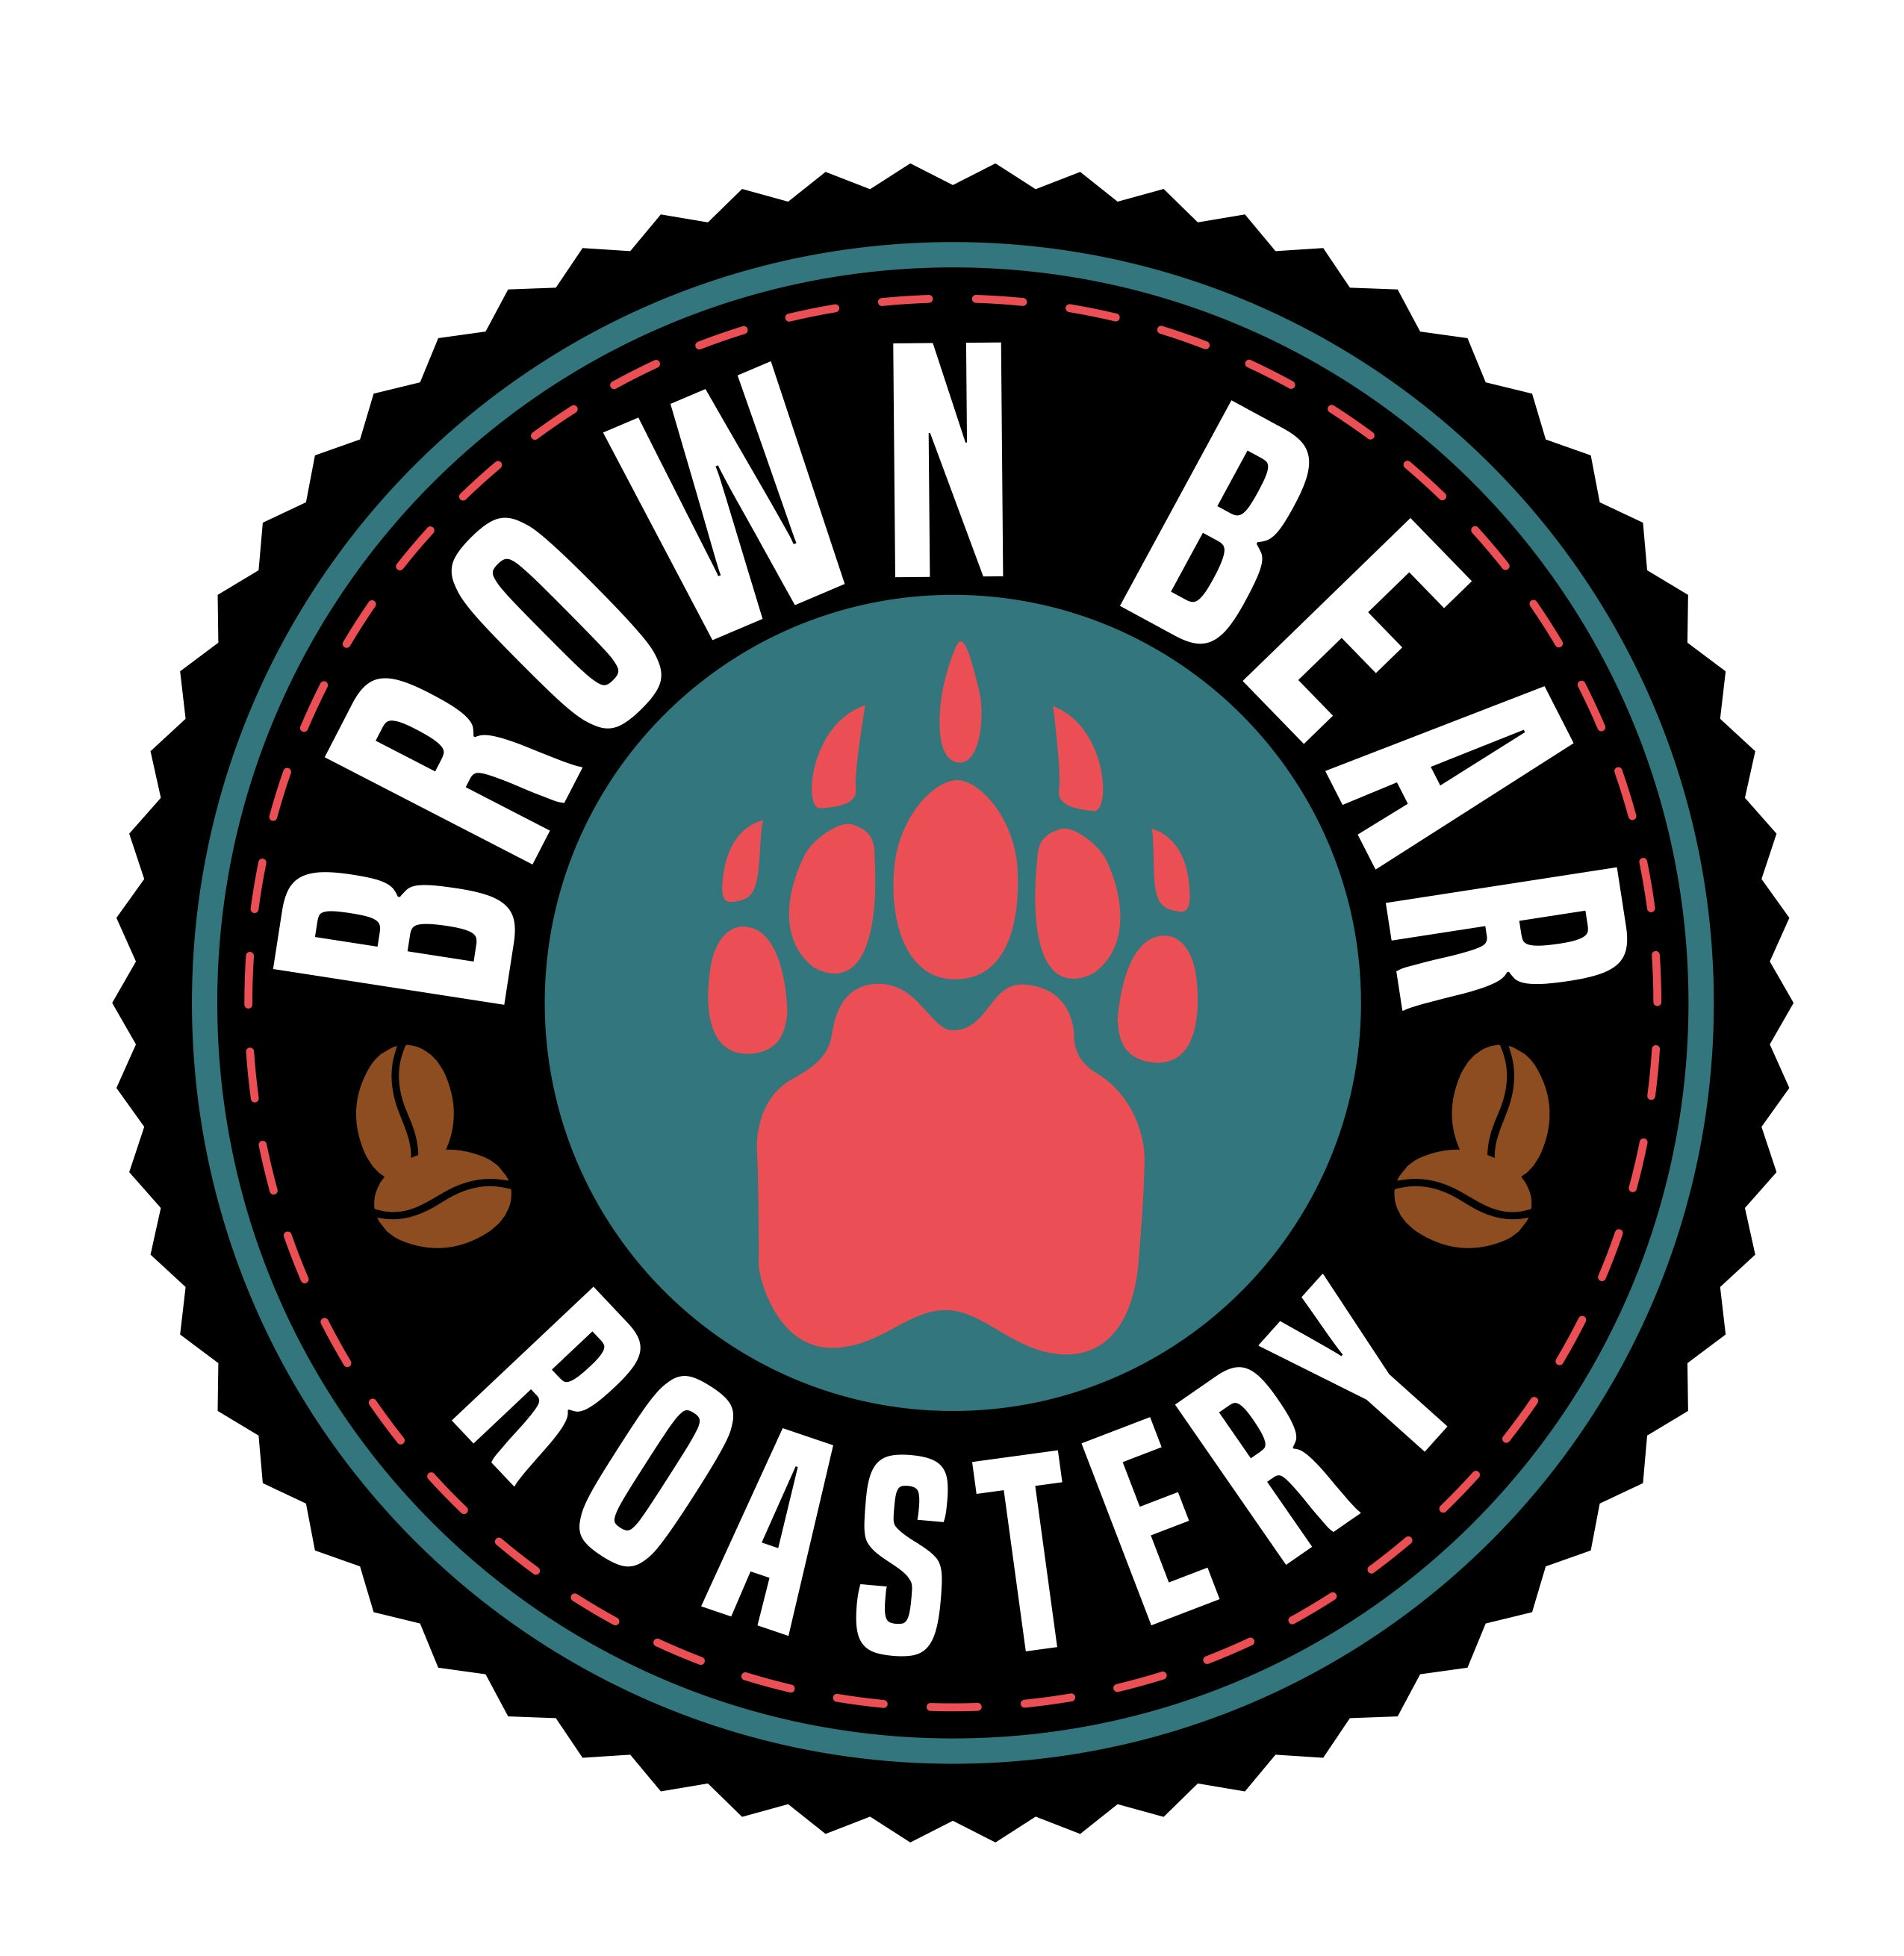 What are Roast Levels? | Brown Bear Roastery